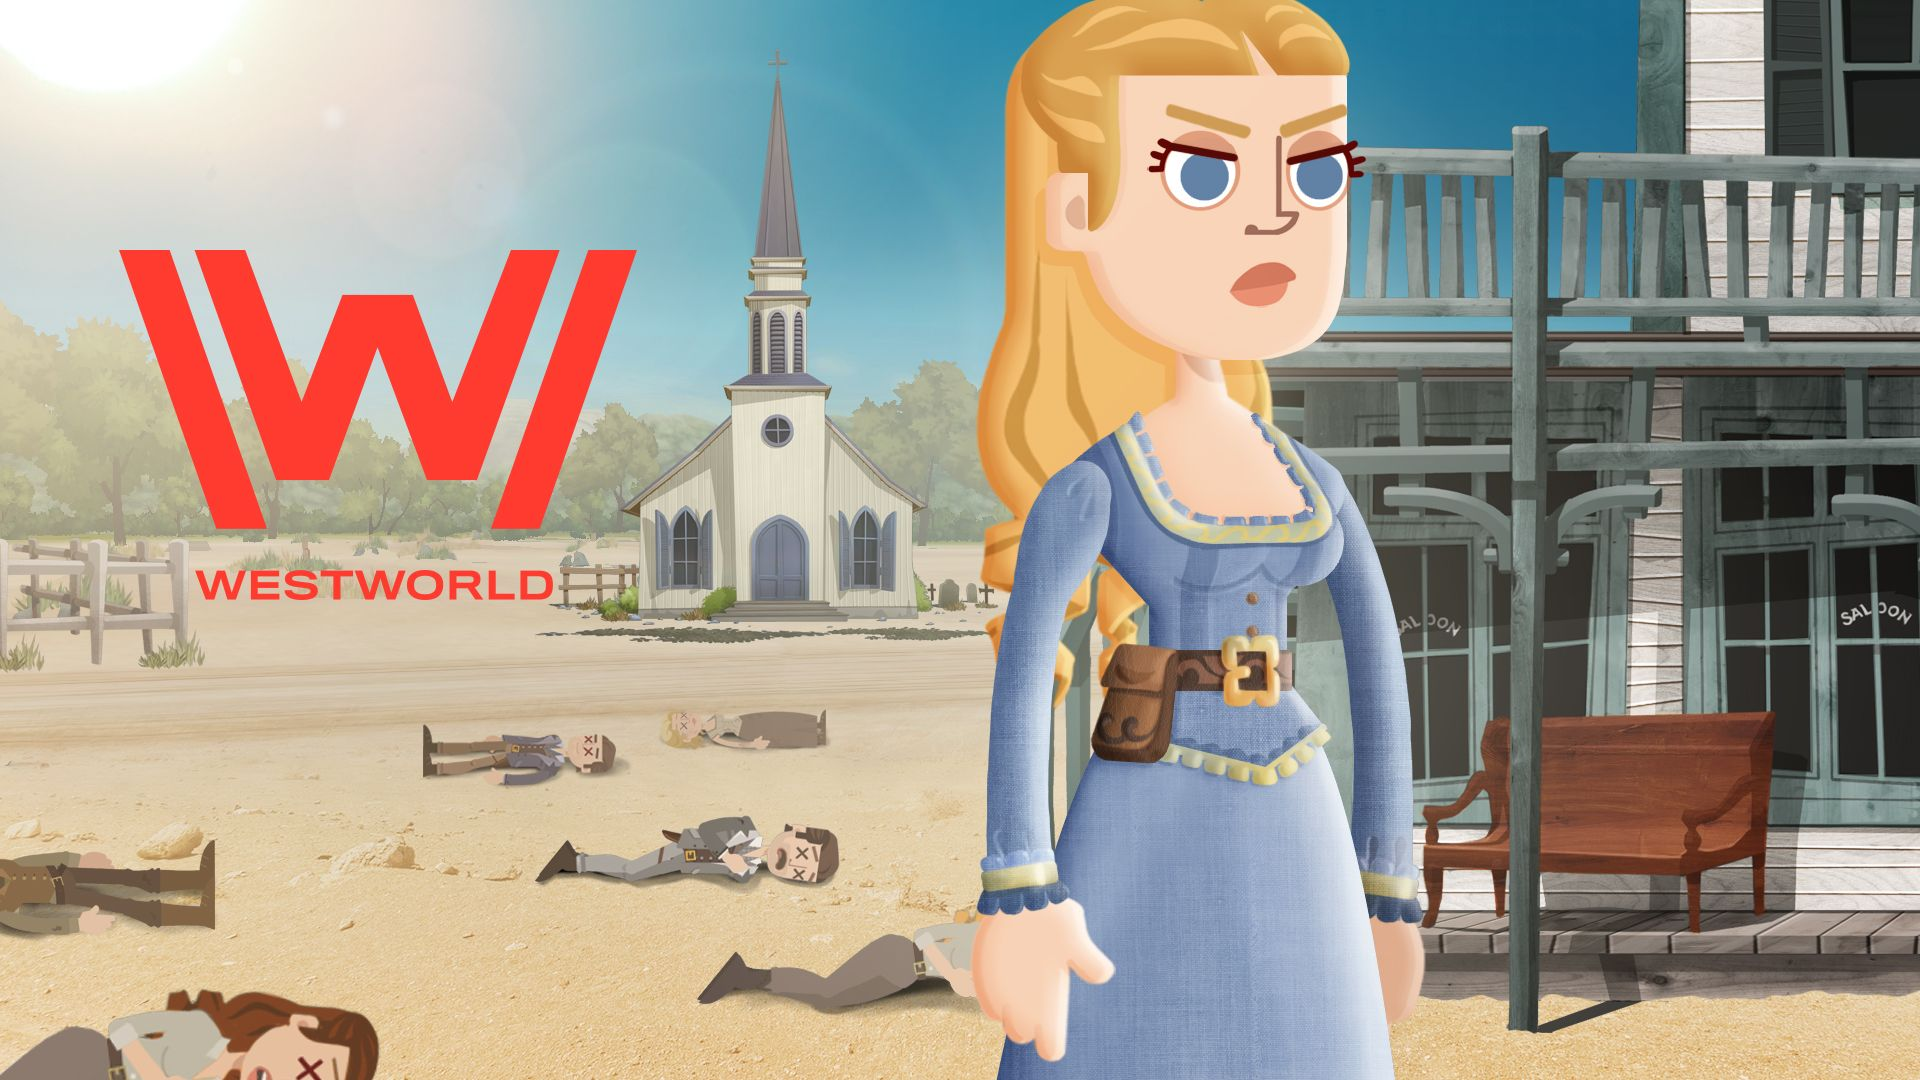 Bethesda sues Warner Bros. for using Fallout Shelter code in Westworld game